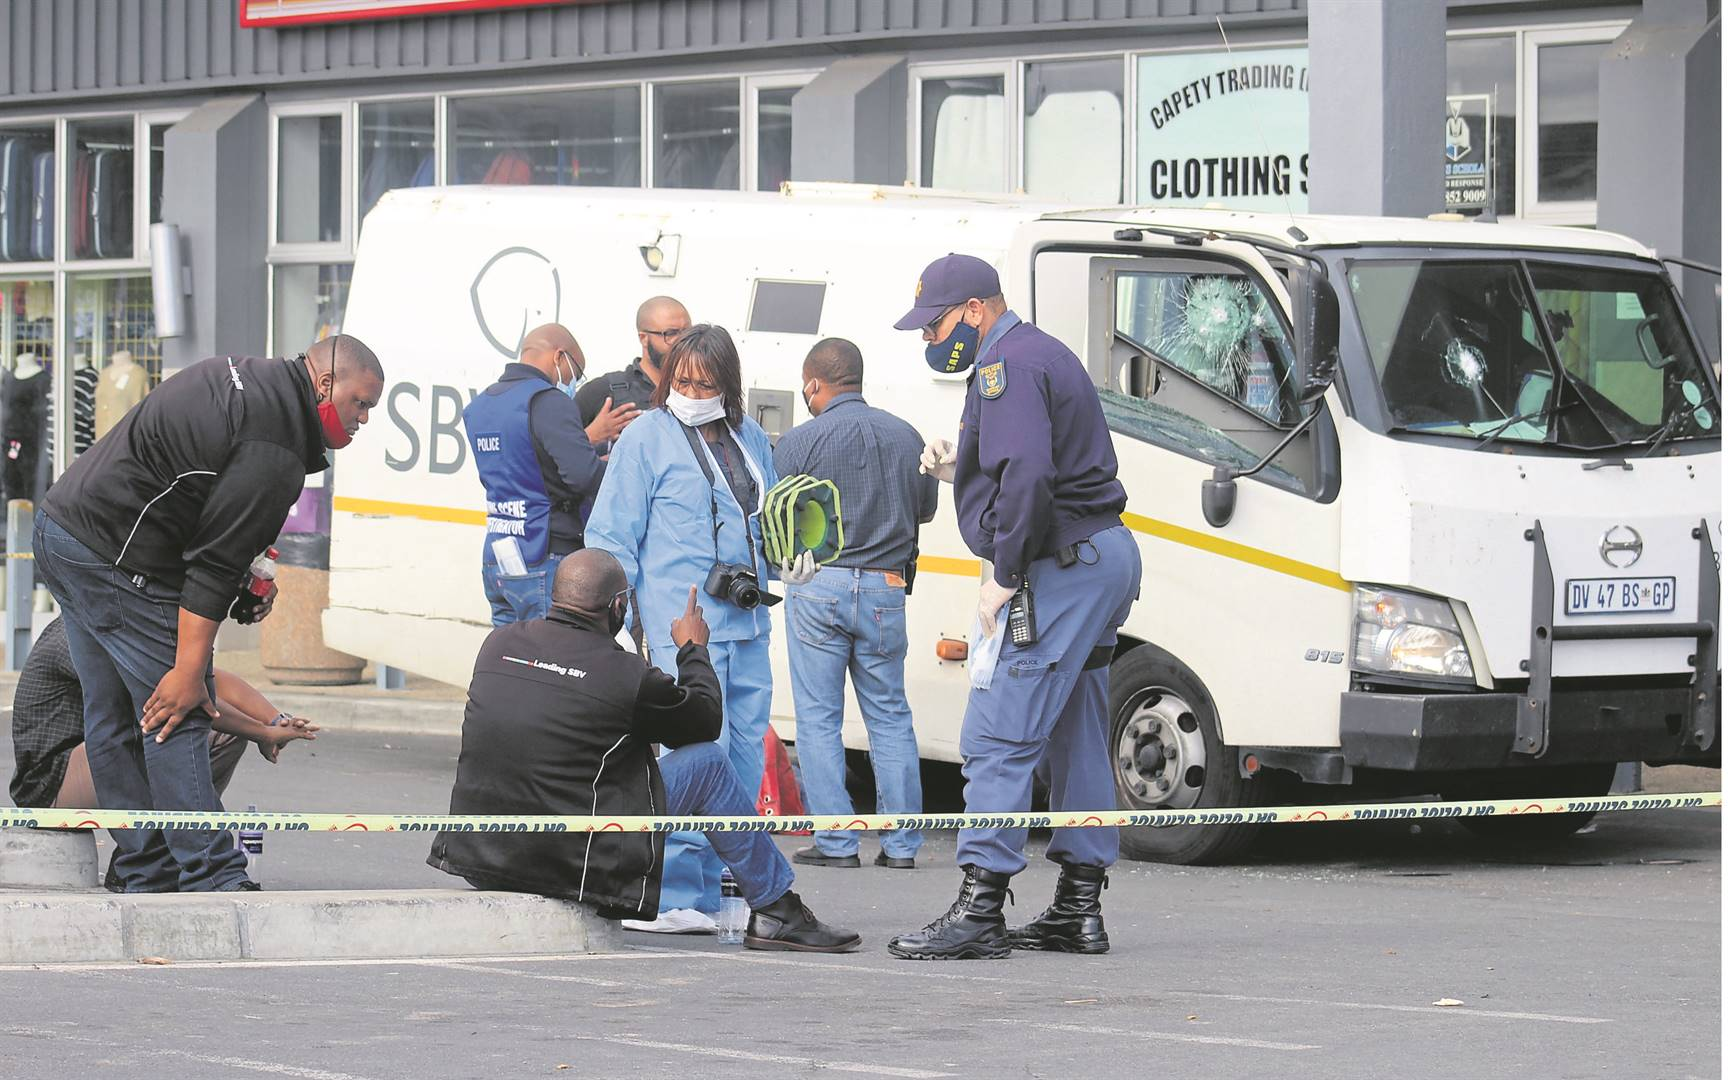 The scene in Macassar where a cash-in-transit heist ended in a shootout with police.